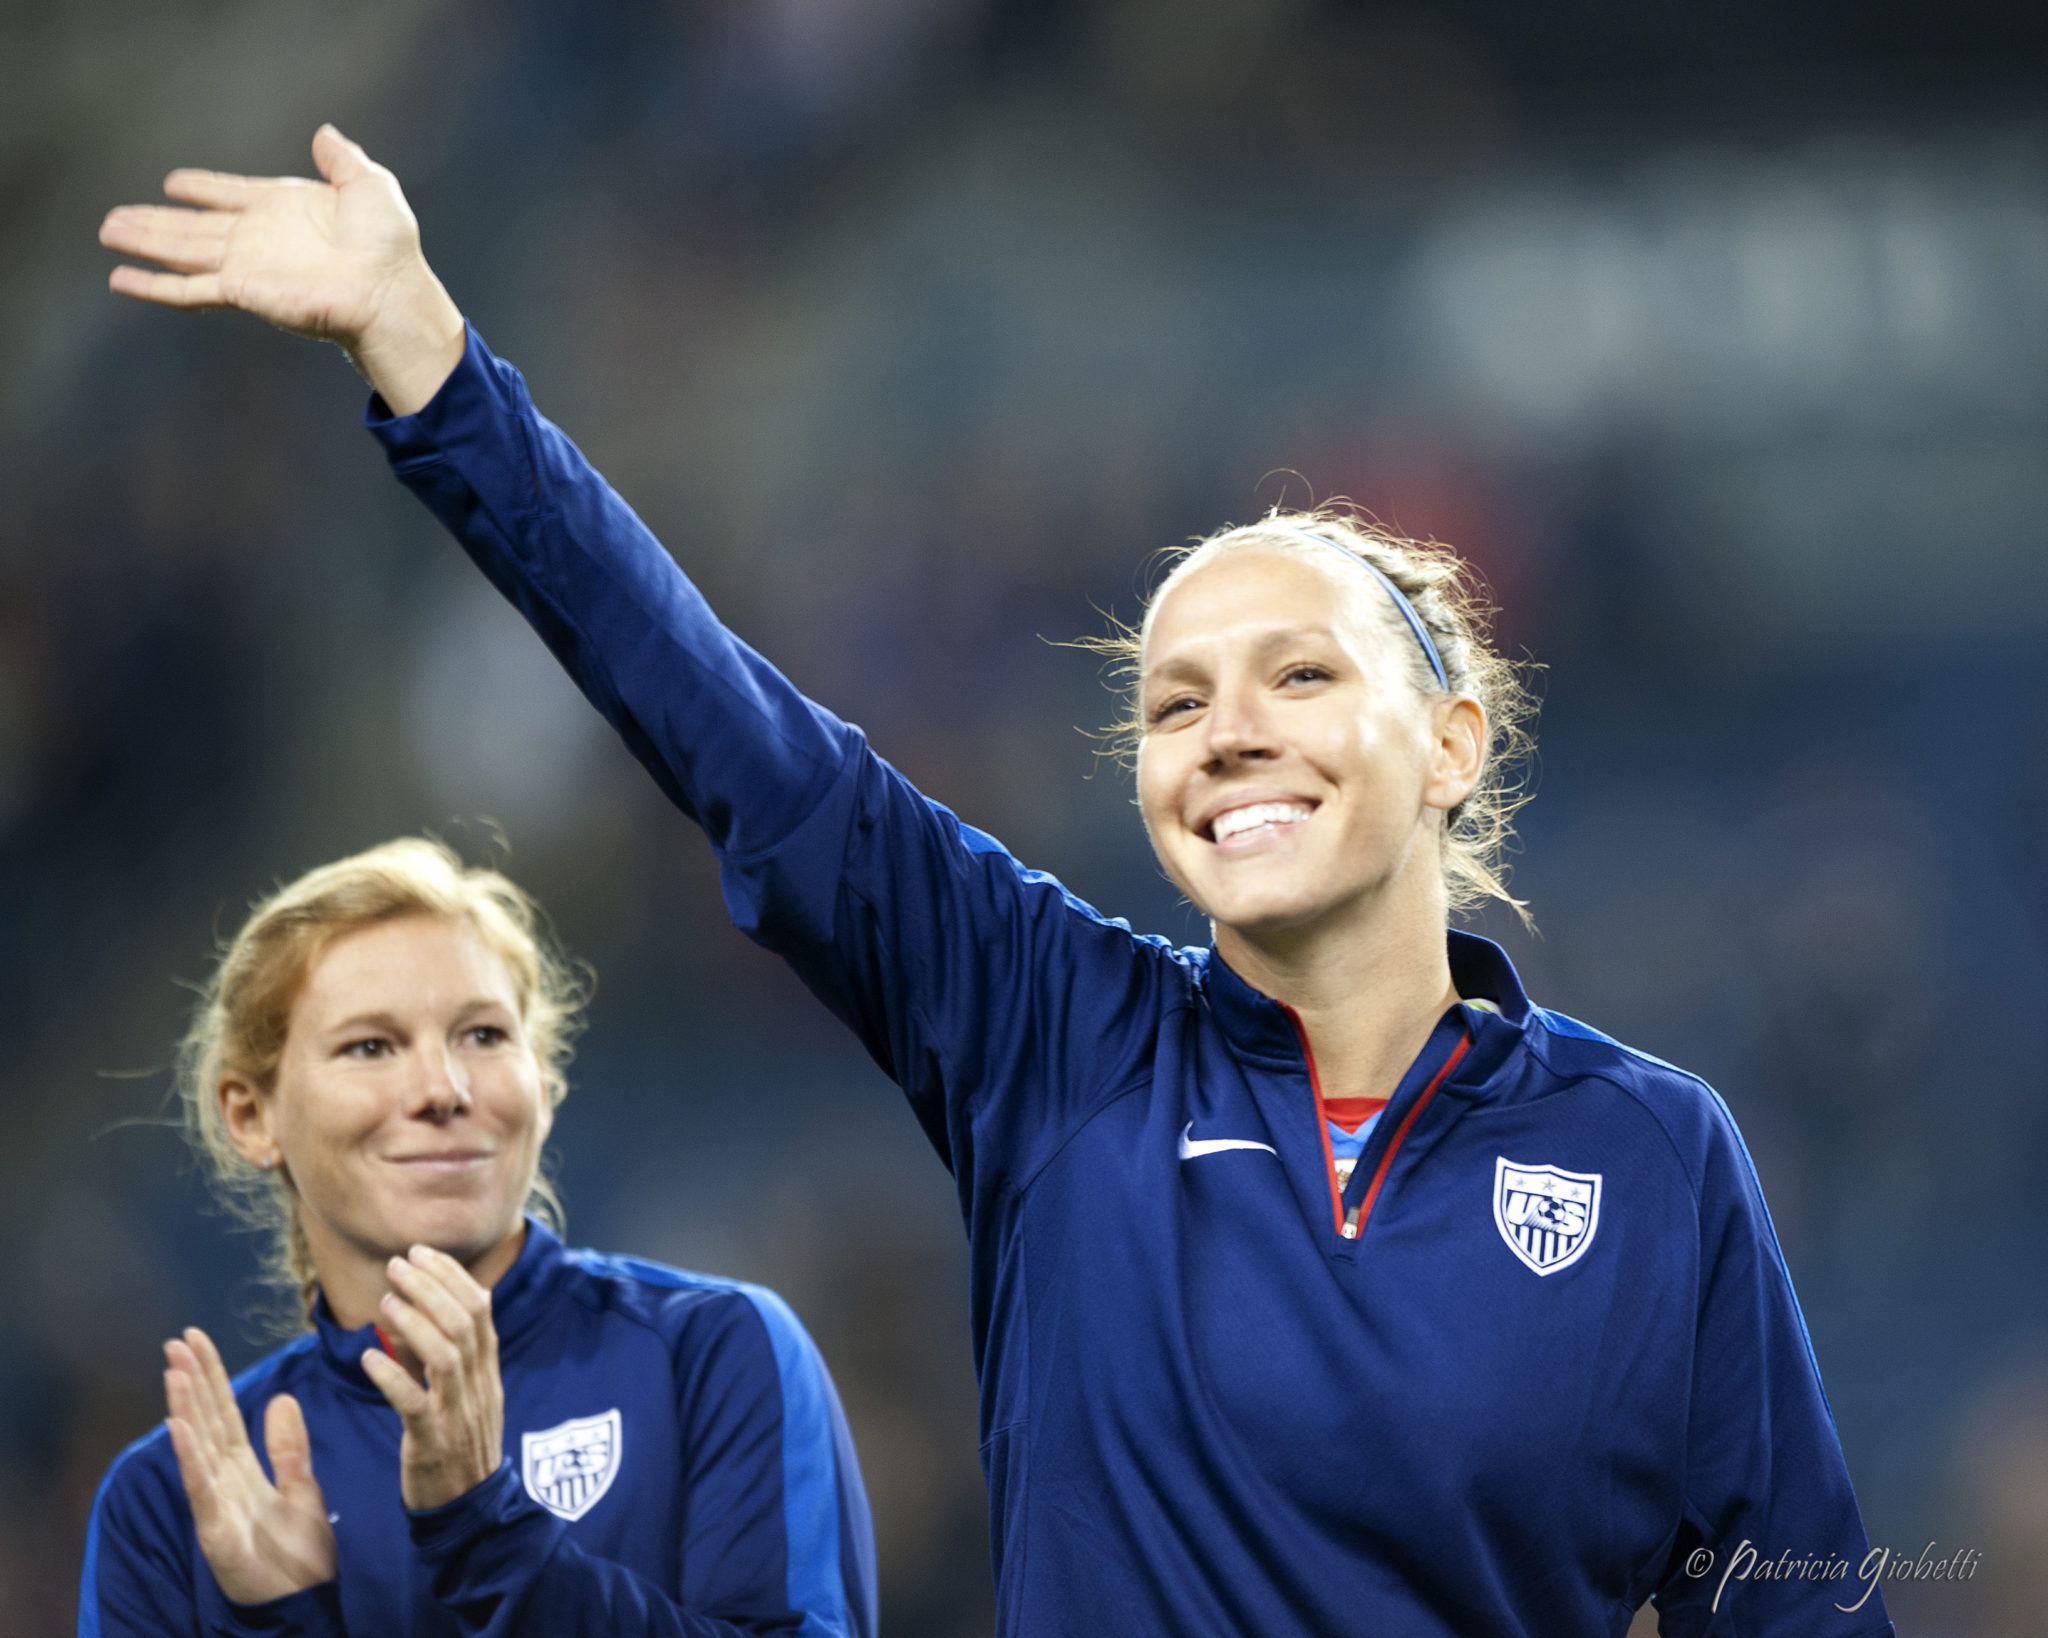 Former USWNT star Lauren Holiday opens up about recovering from brain surgery in a recent Instagram post. (Photo Copyright Patricia Giobetti for The Equalizer)